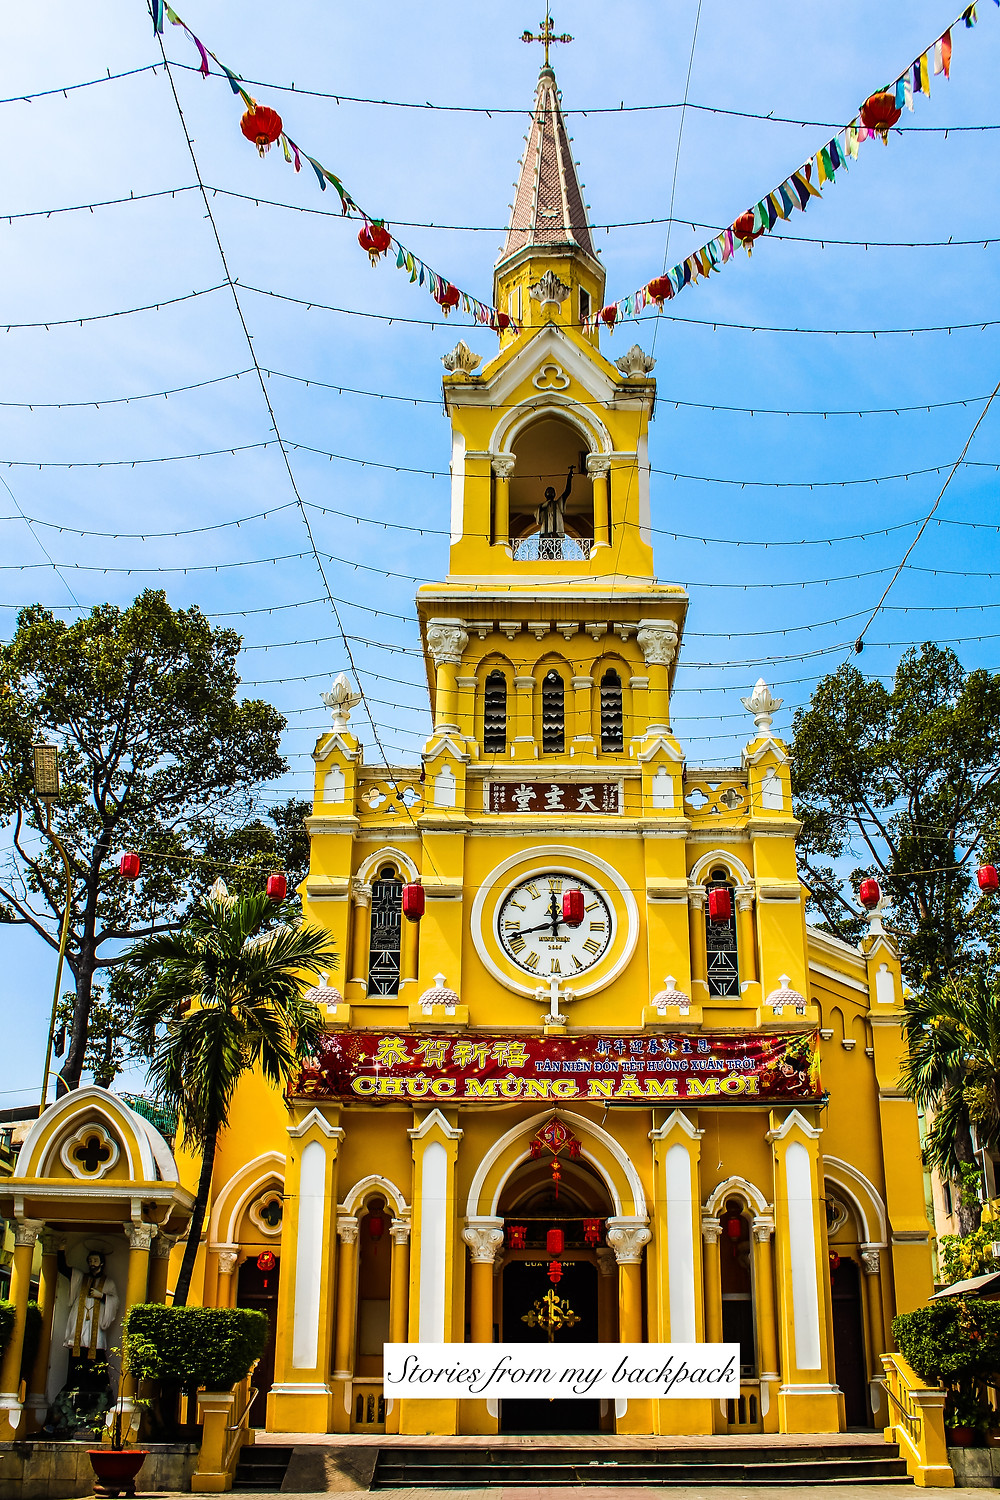 Cholon, Cho Lon, Saigon Chinatown, Ho Chi Minh city china town, things to do in china town, things to do in ho Chi Minh city, chinese architecture in Vietnam